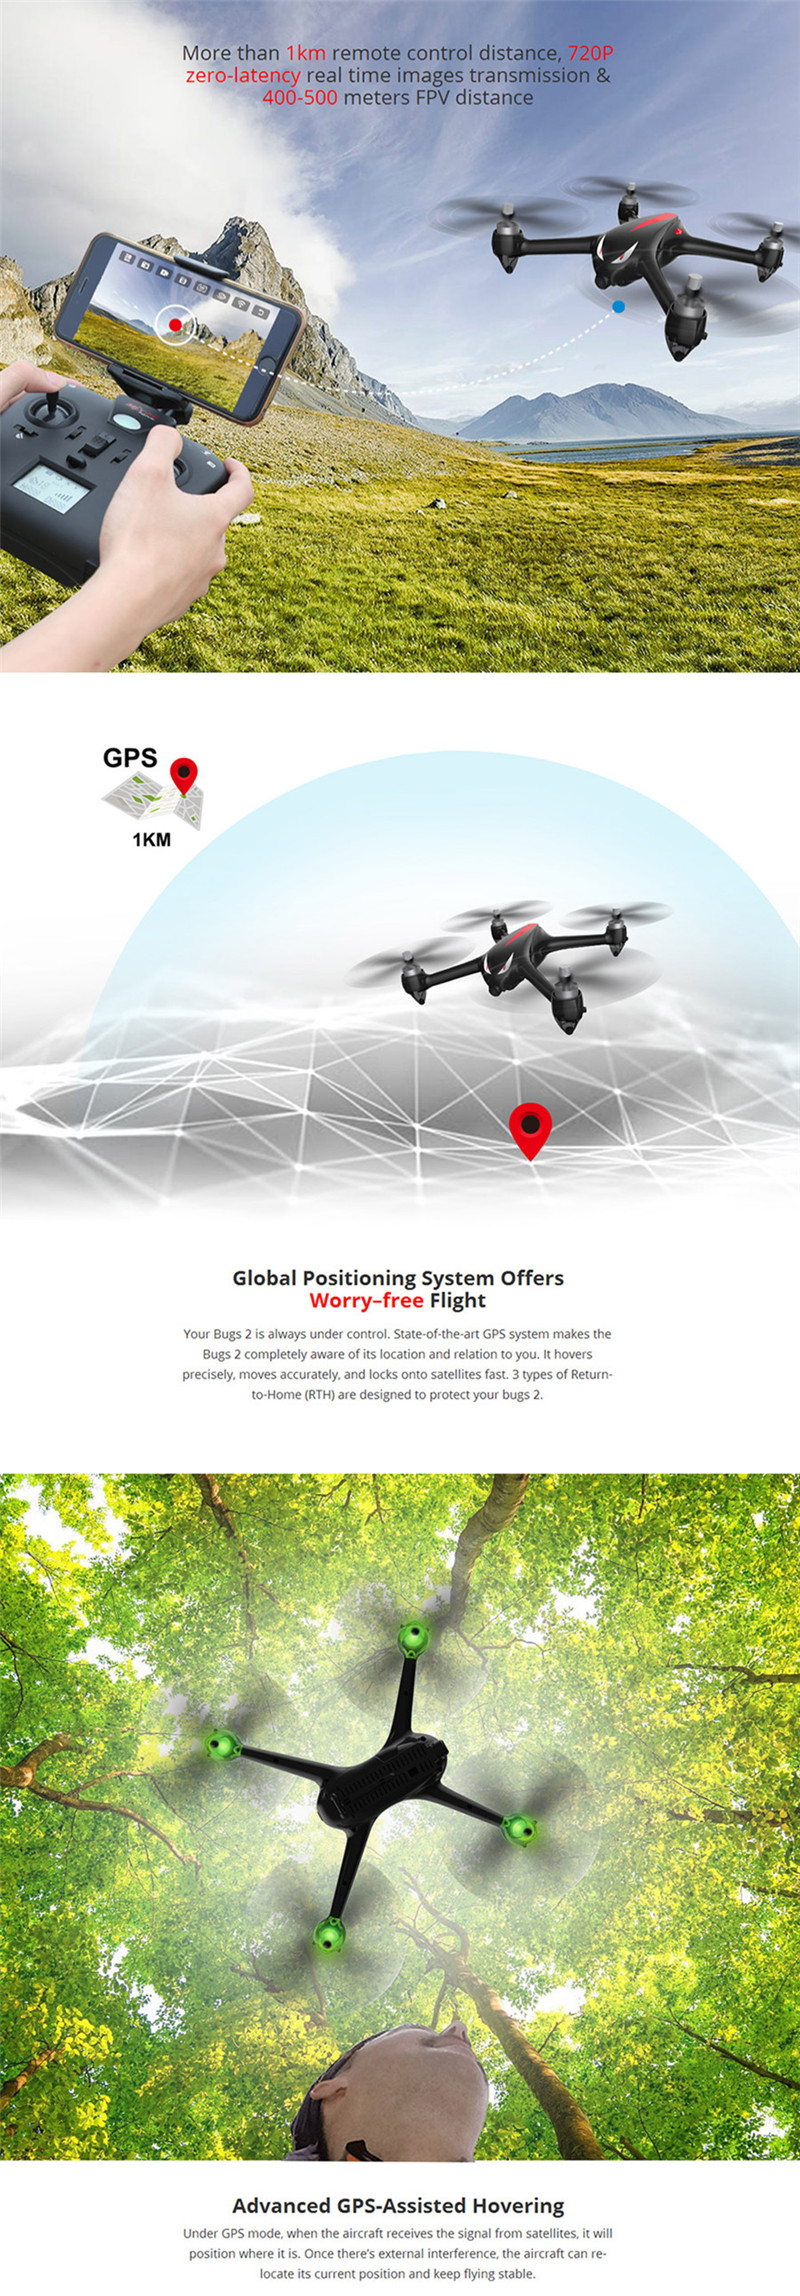 MJX B2W Bugs 2W Monster WiFi FPV Brushless 1080P HD Camera GPS Altitude Hold Black Red RC Drone Quadcopter RTF VS Hubsan H501S